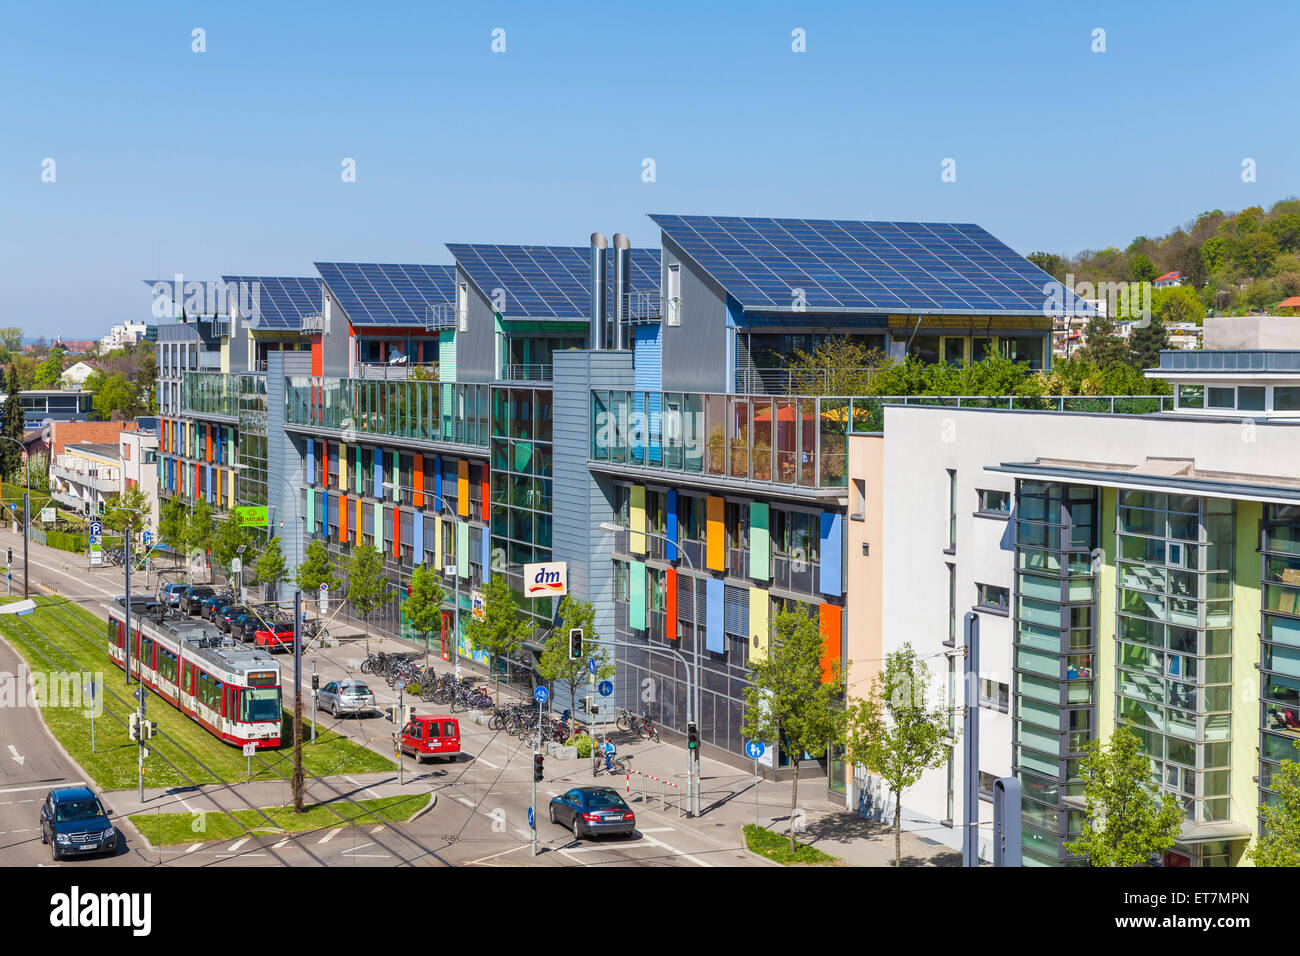 germany freiburg im breisgau energy plus houses at freiburg vauban stock photo 83763197 alamy. Black Bedroom Furniture Sets. Home Design Ideas